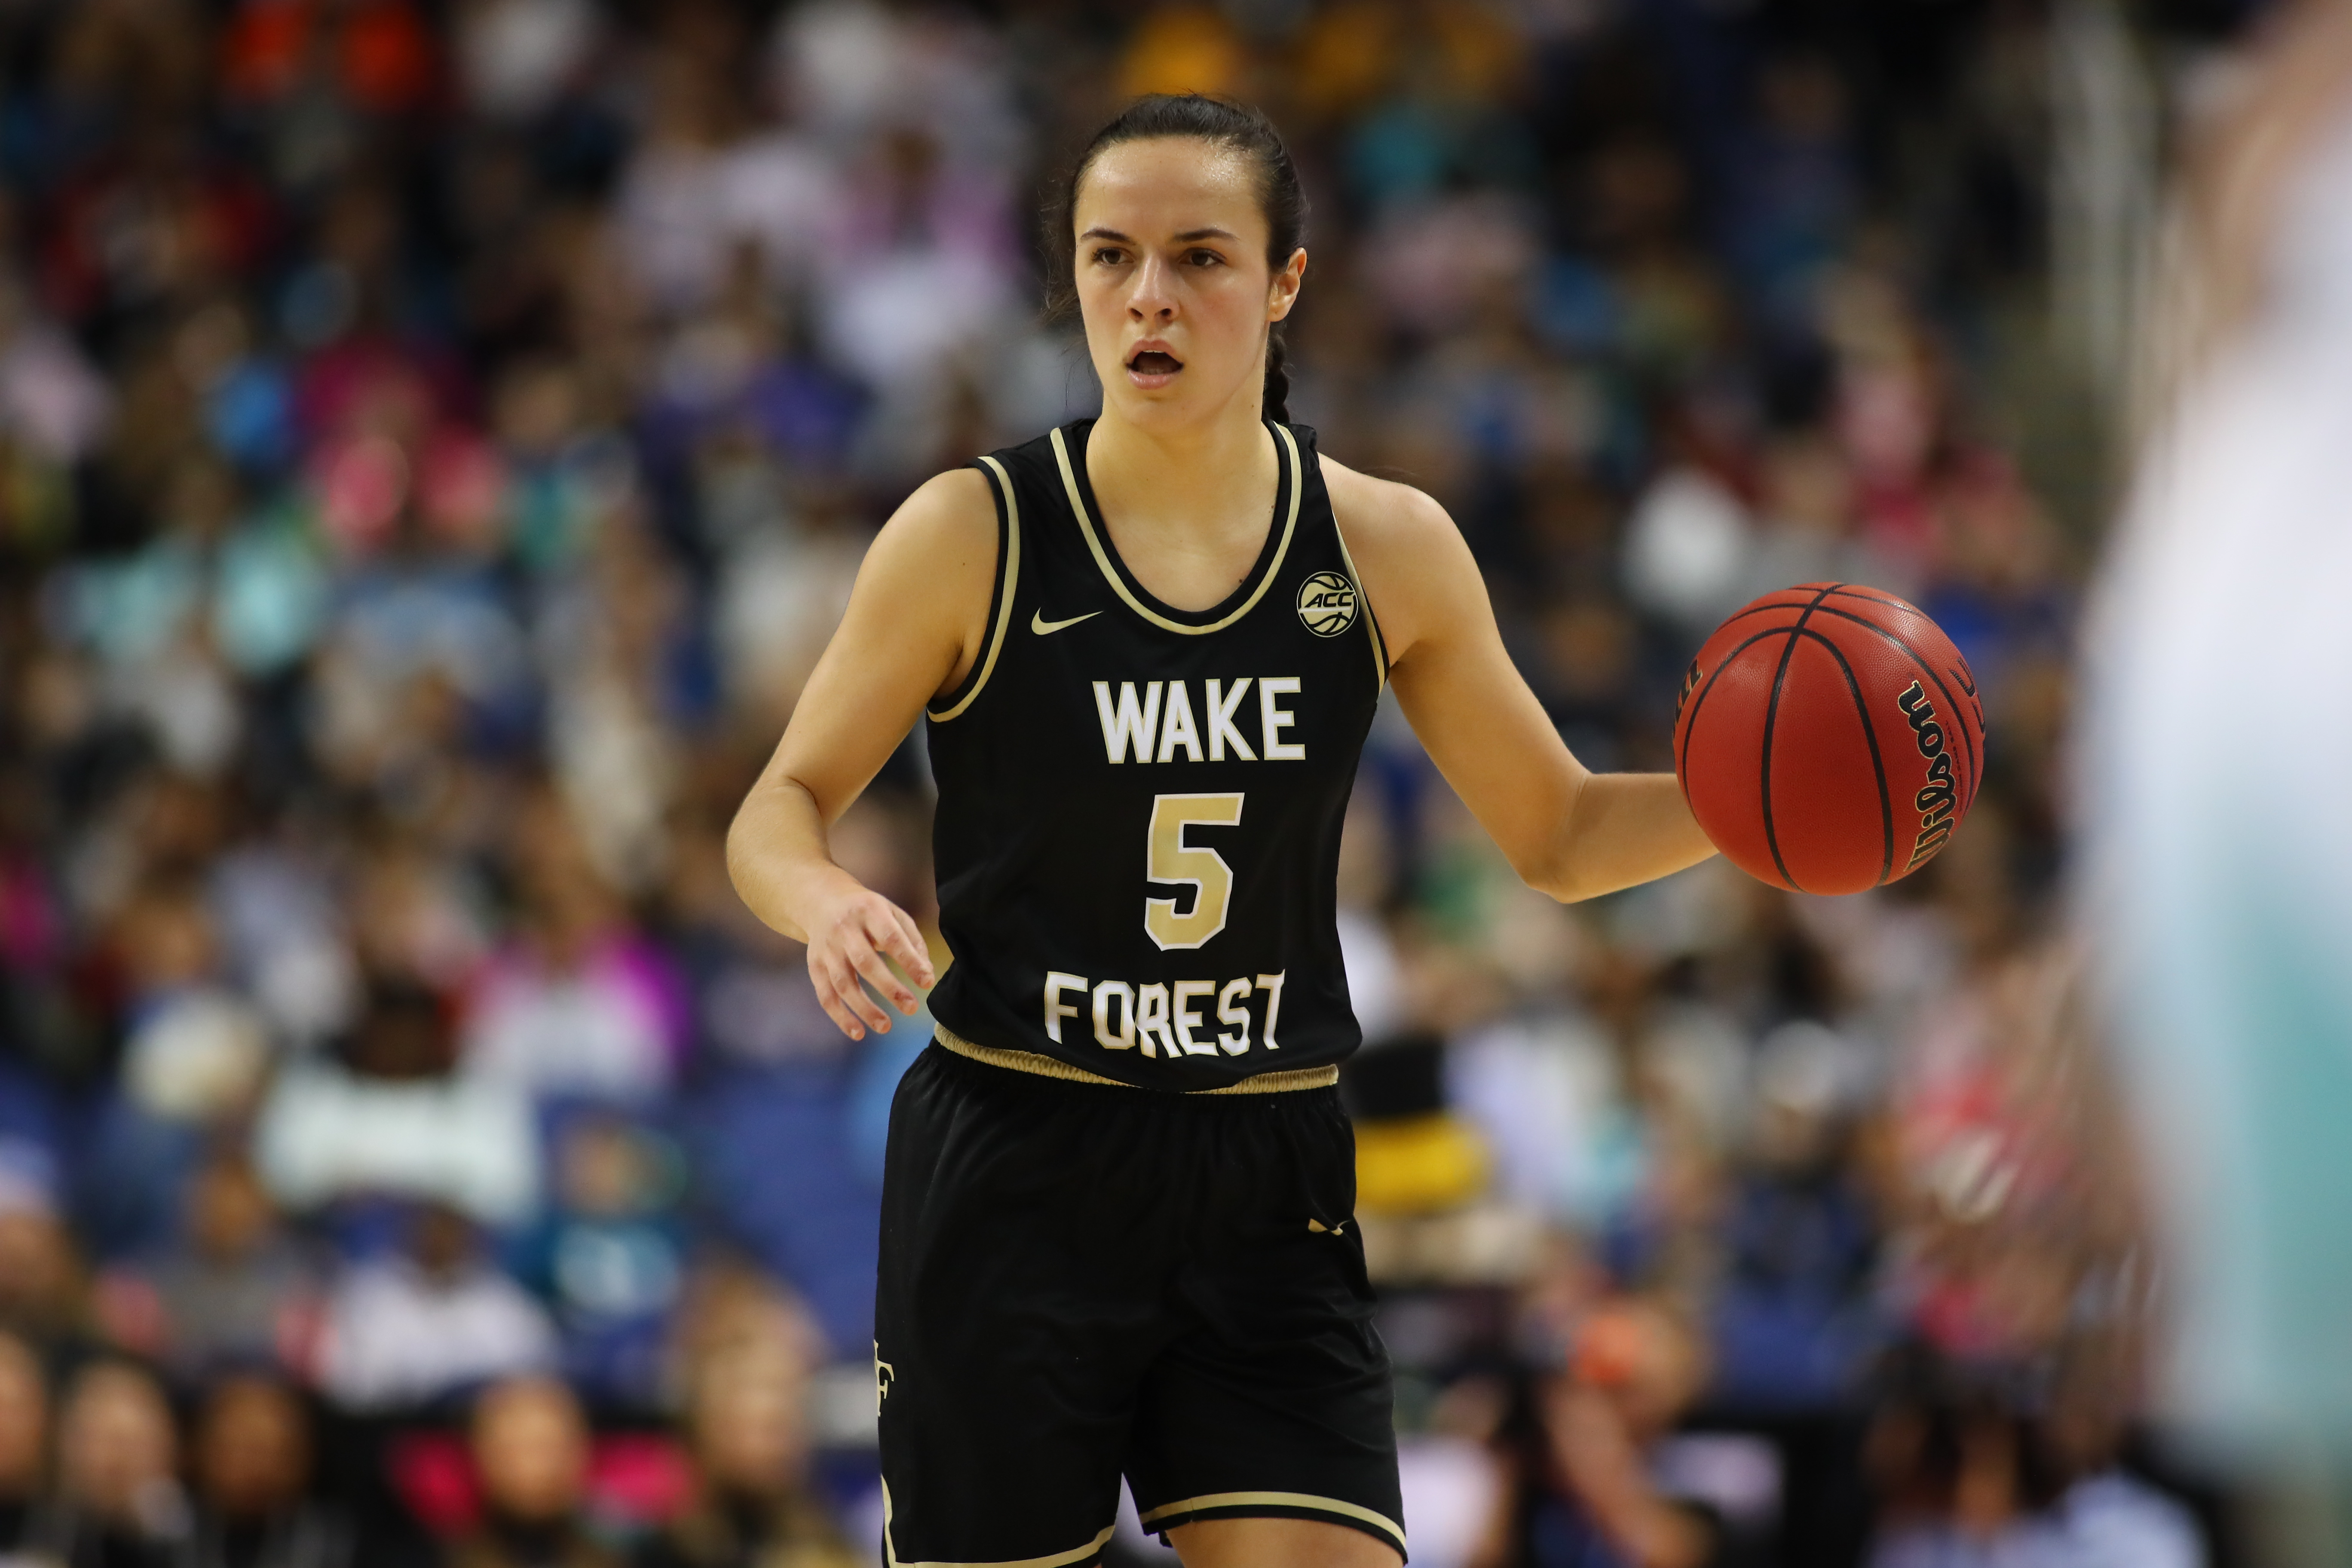 COLLEGE BASKETBALL: MAR 06 ACC Women's Tournament - Wake Forest v Florida State